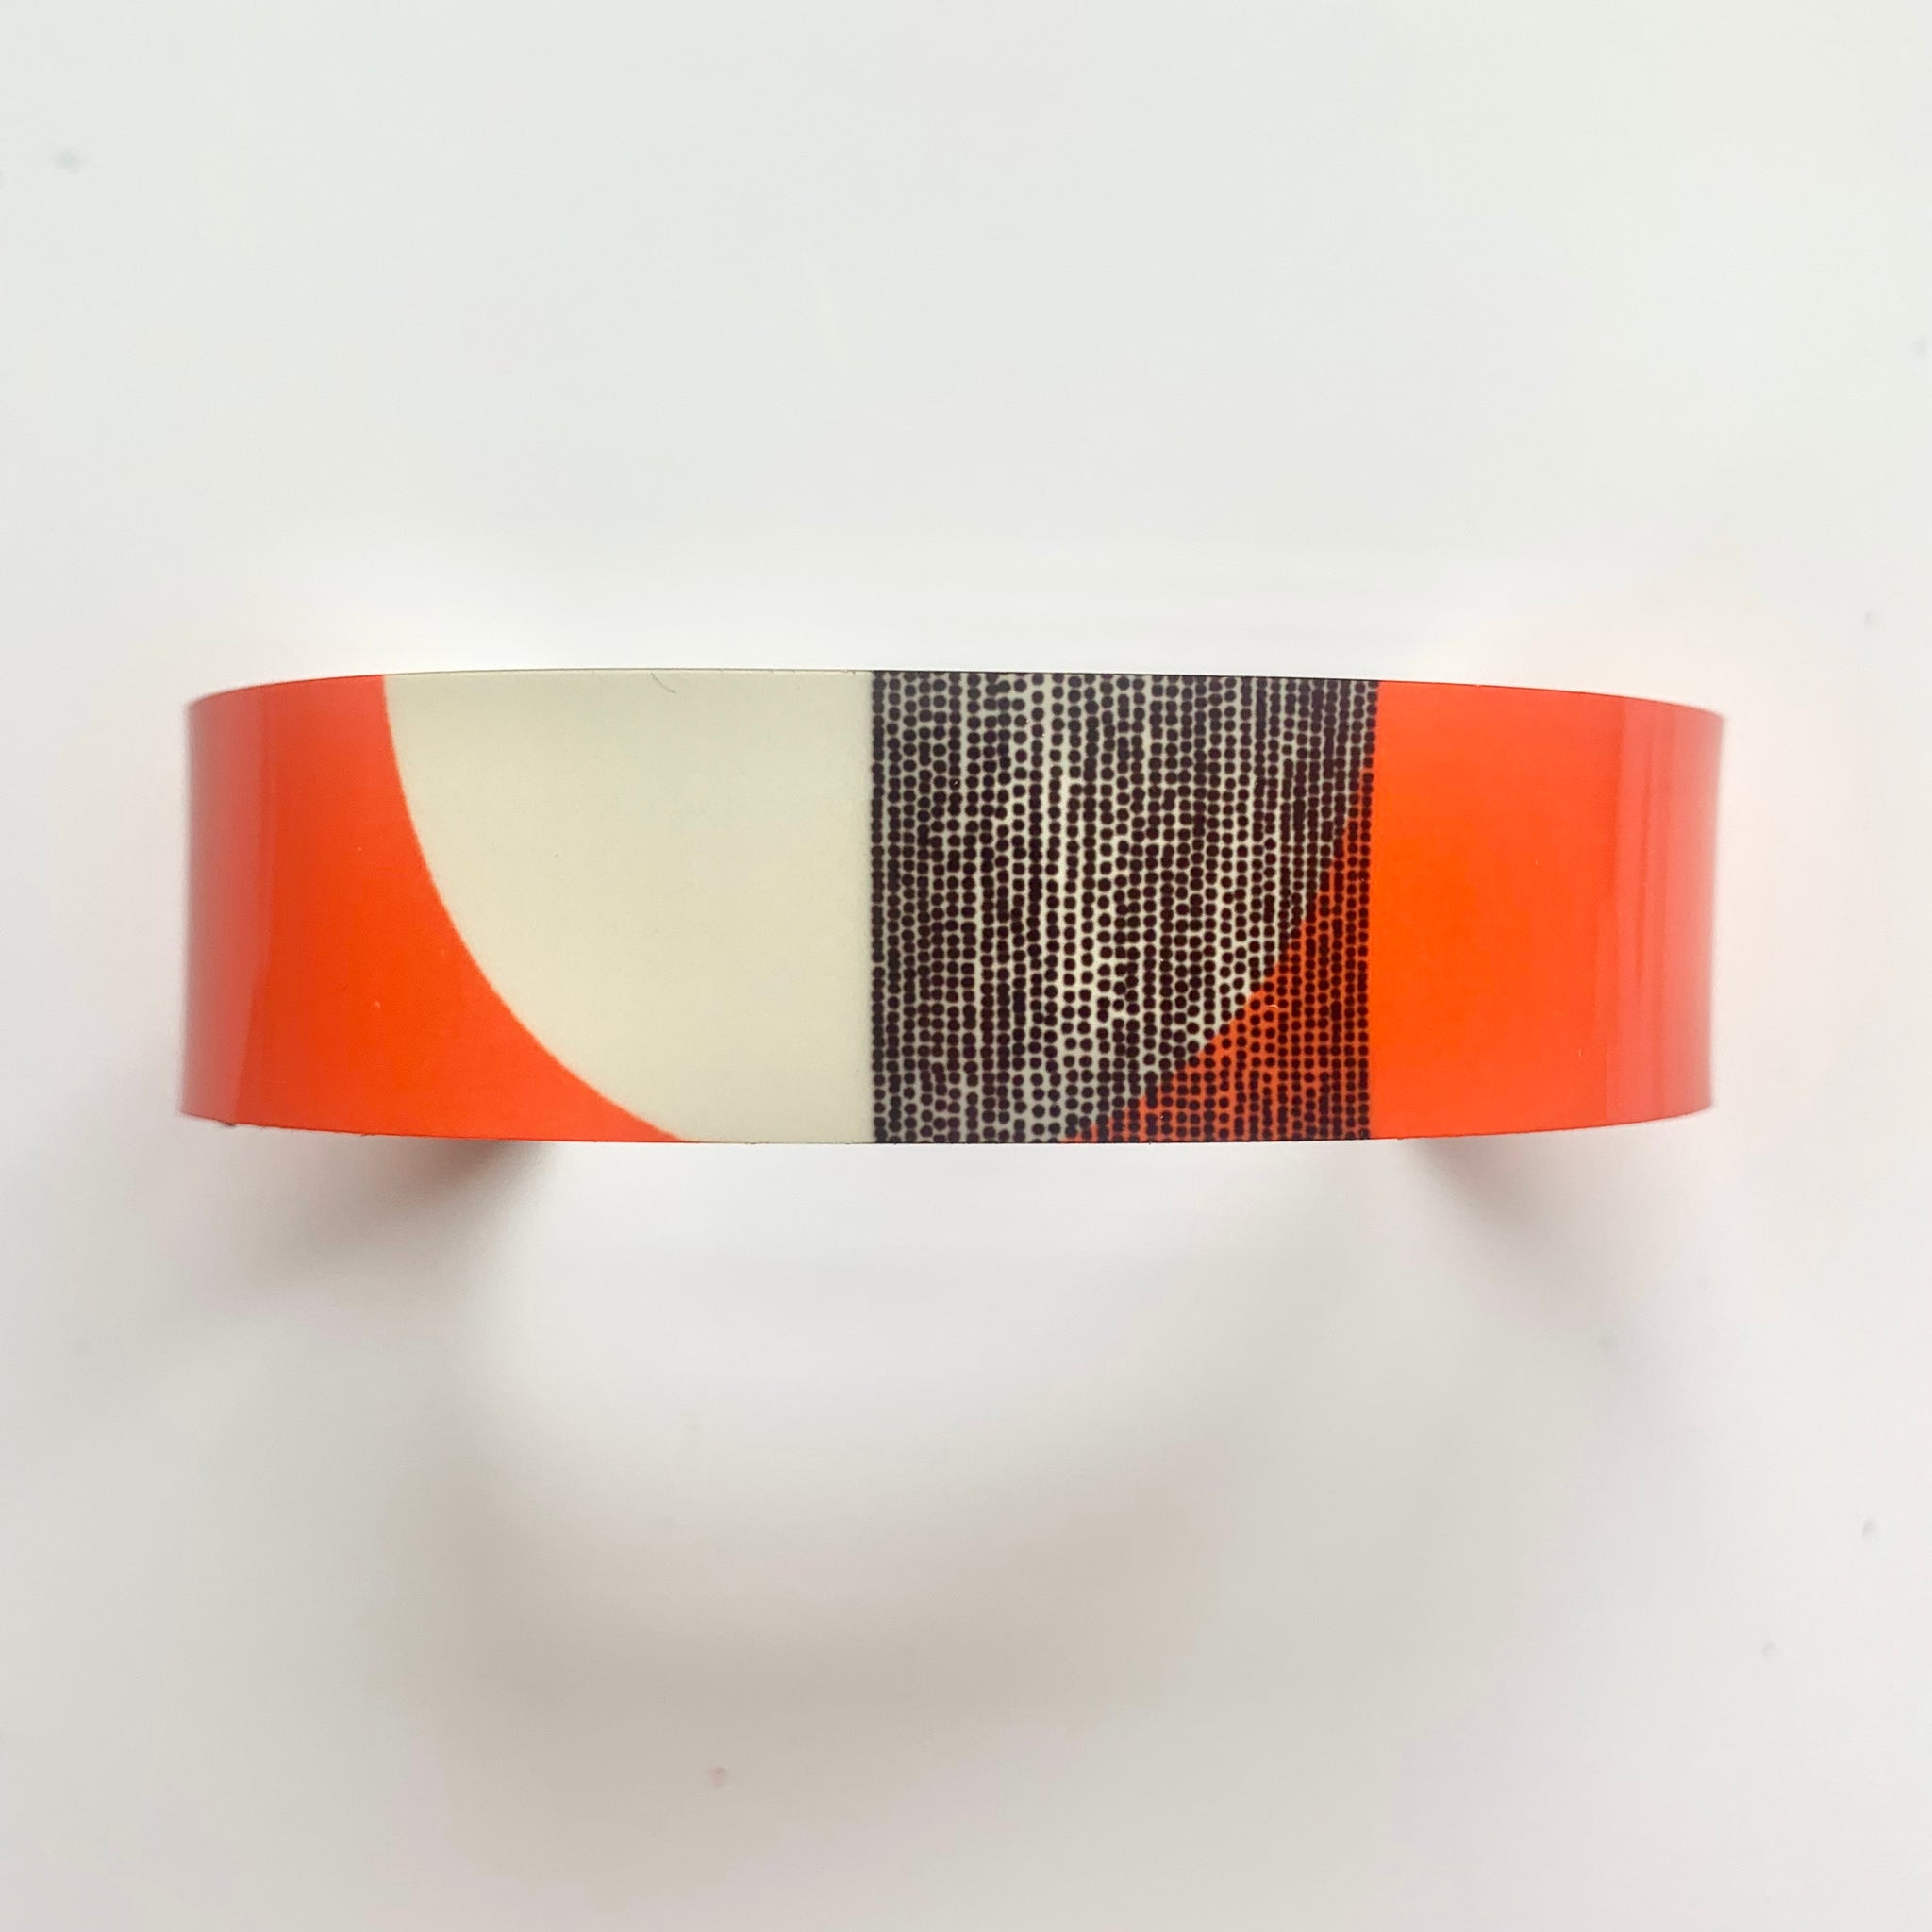 Balance Narrow Cuff Bracelet - Orange Band (New)